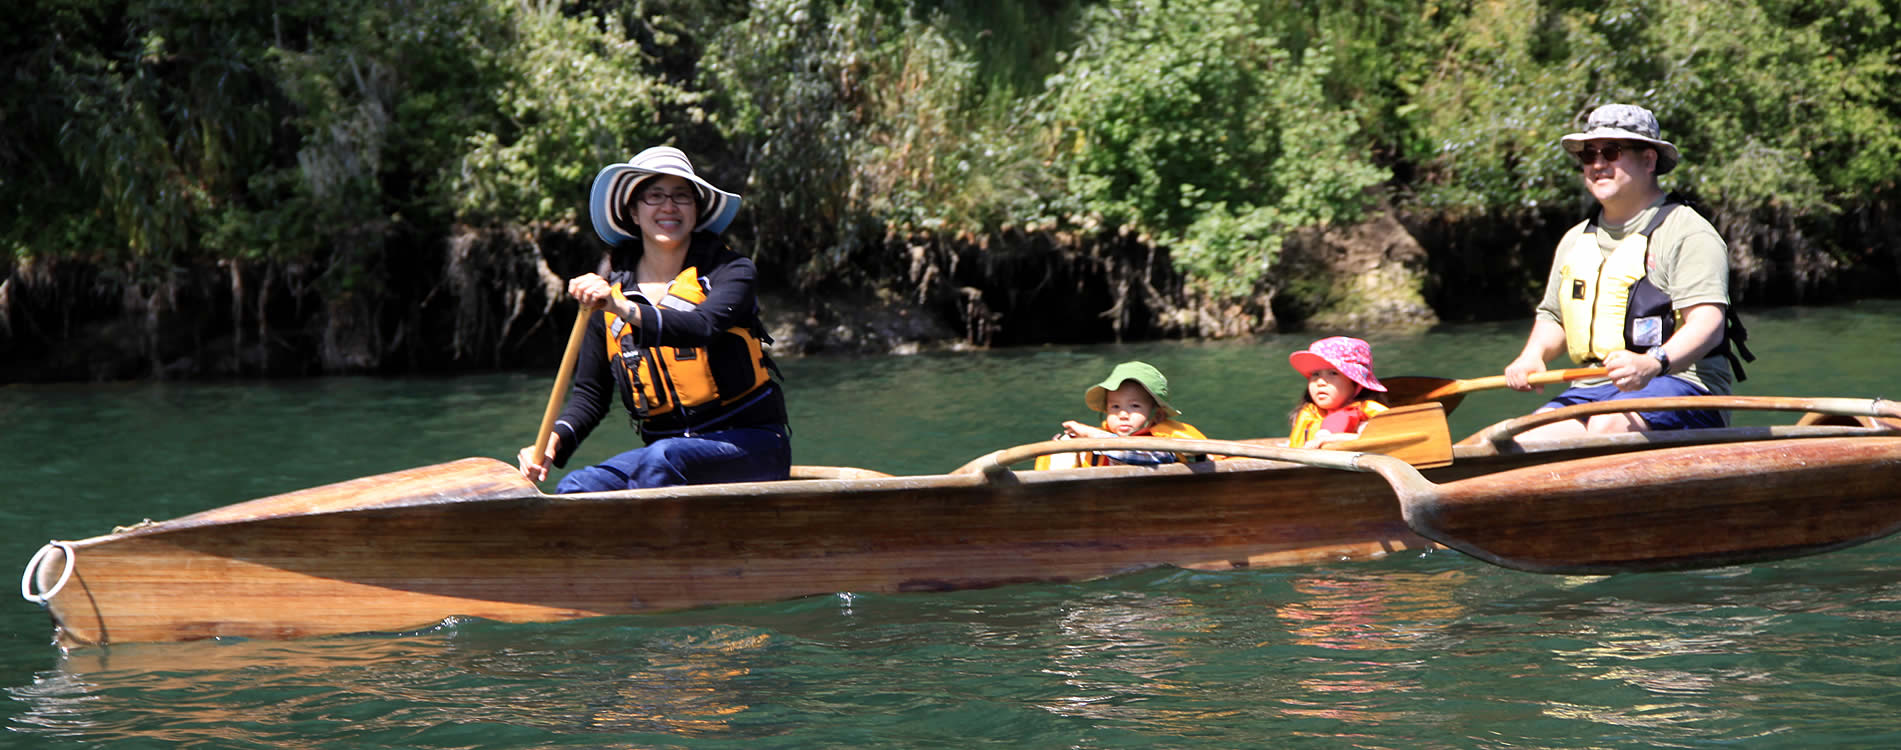 family outrigger big river mendocino